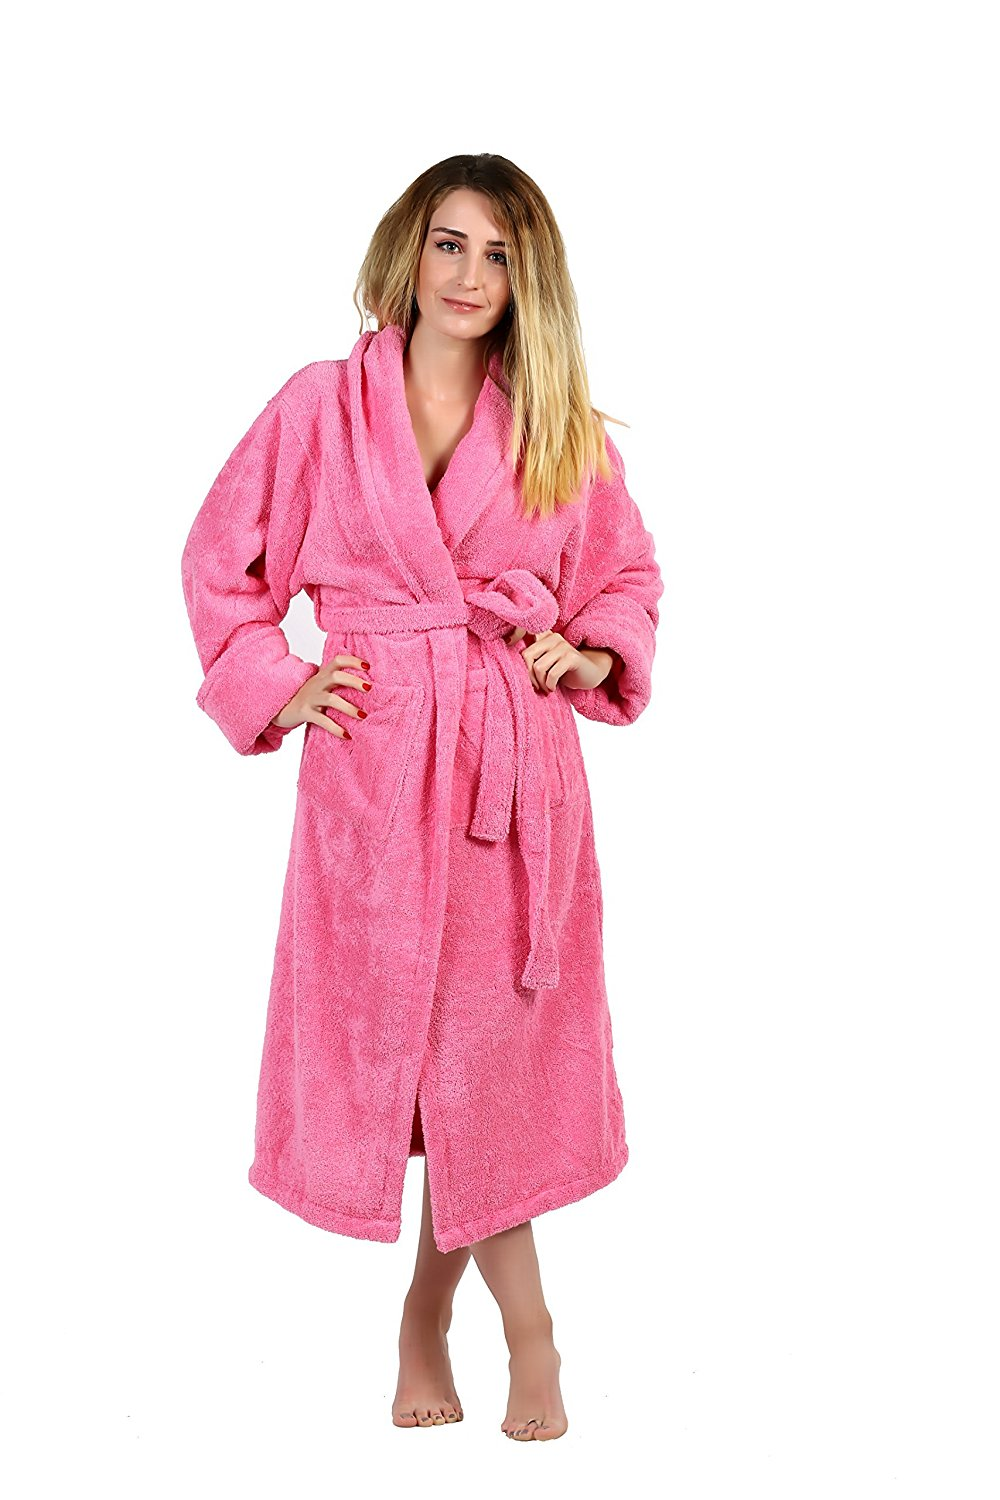 7ac7b88a0d Get Quotations · All Design Towels Pure Turkish Cotton Kimono Terry Shawl  Collar Solid Women s Bathrobes